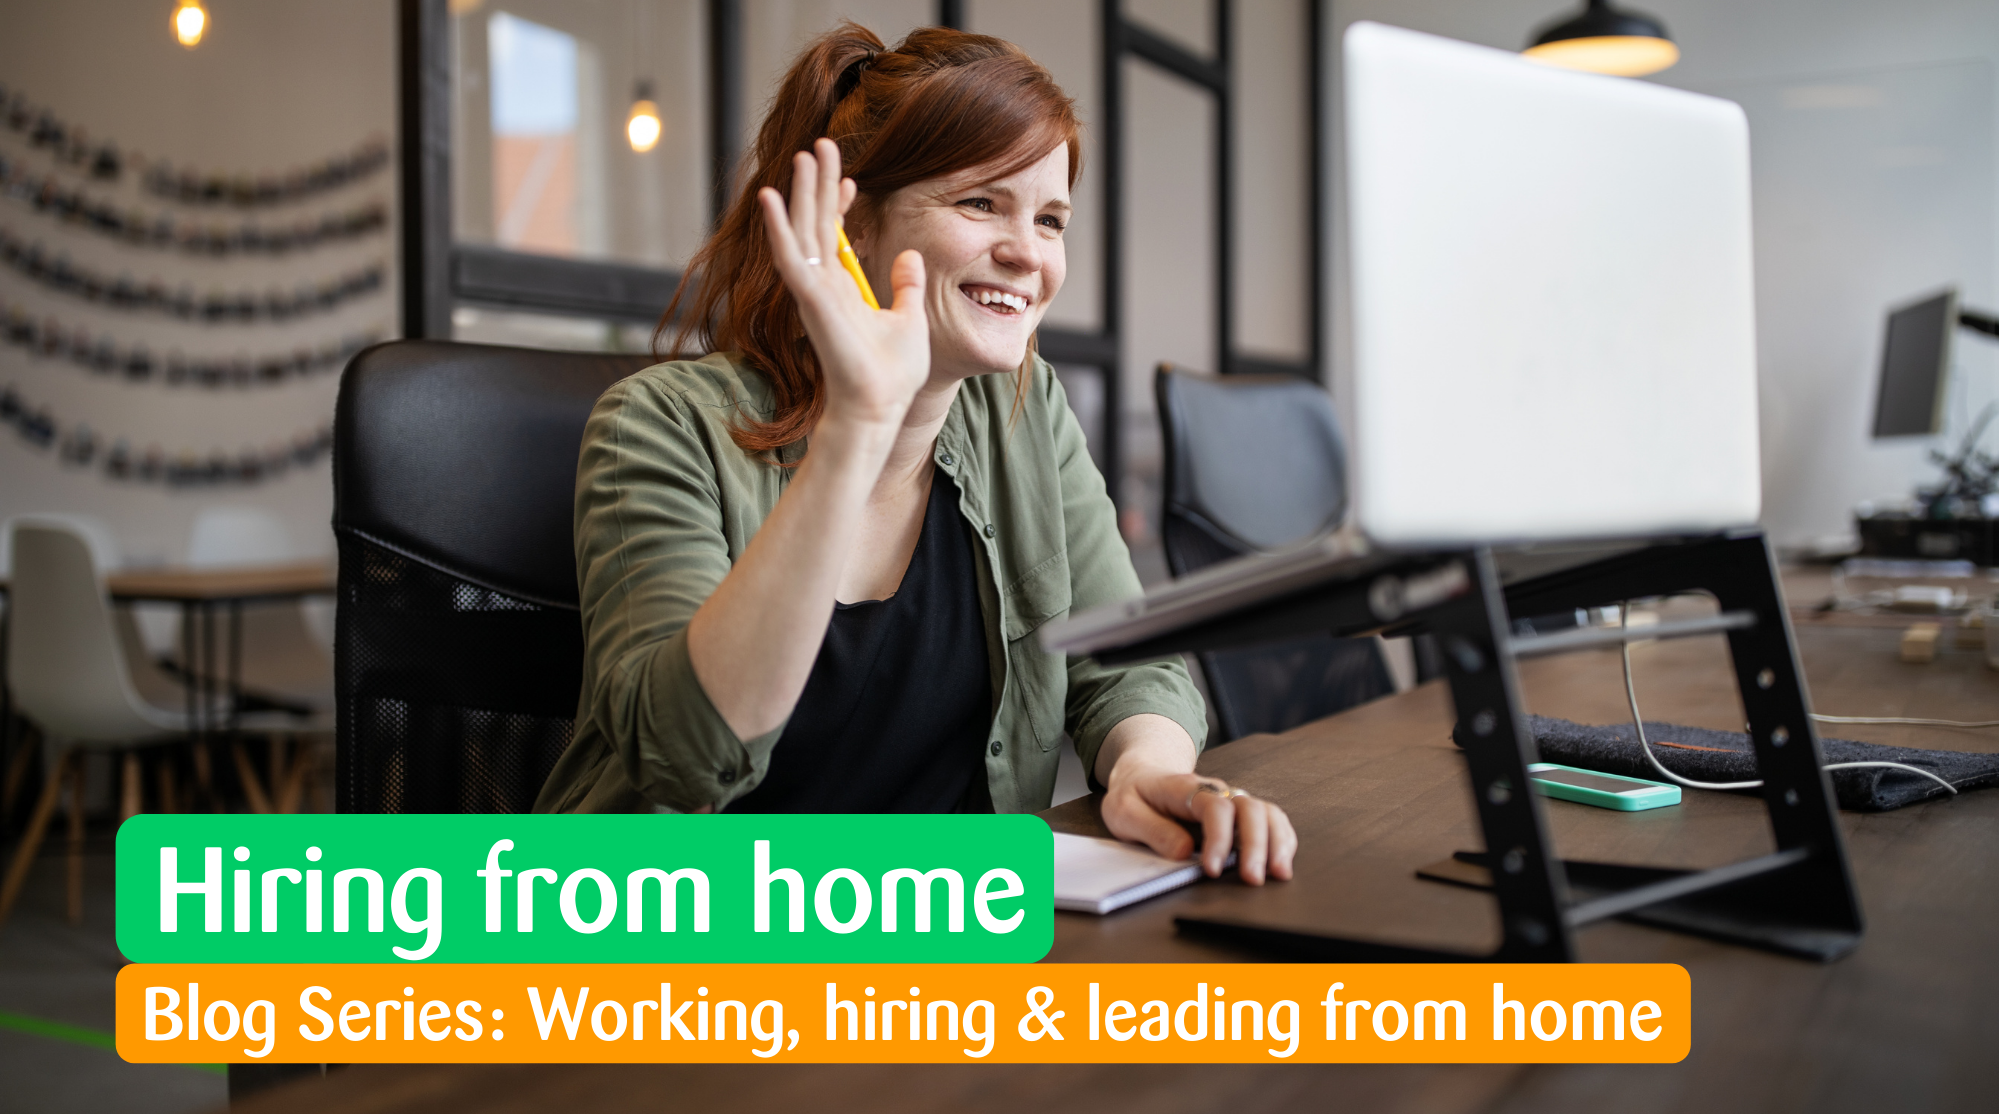 Hiring from home - blog series about working, hiring and leading from home